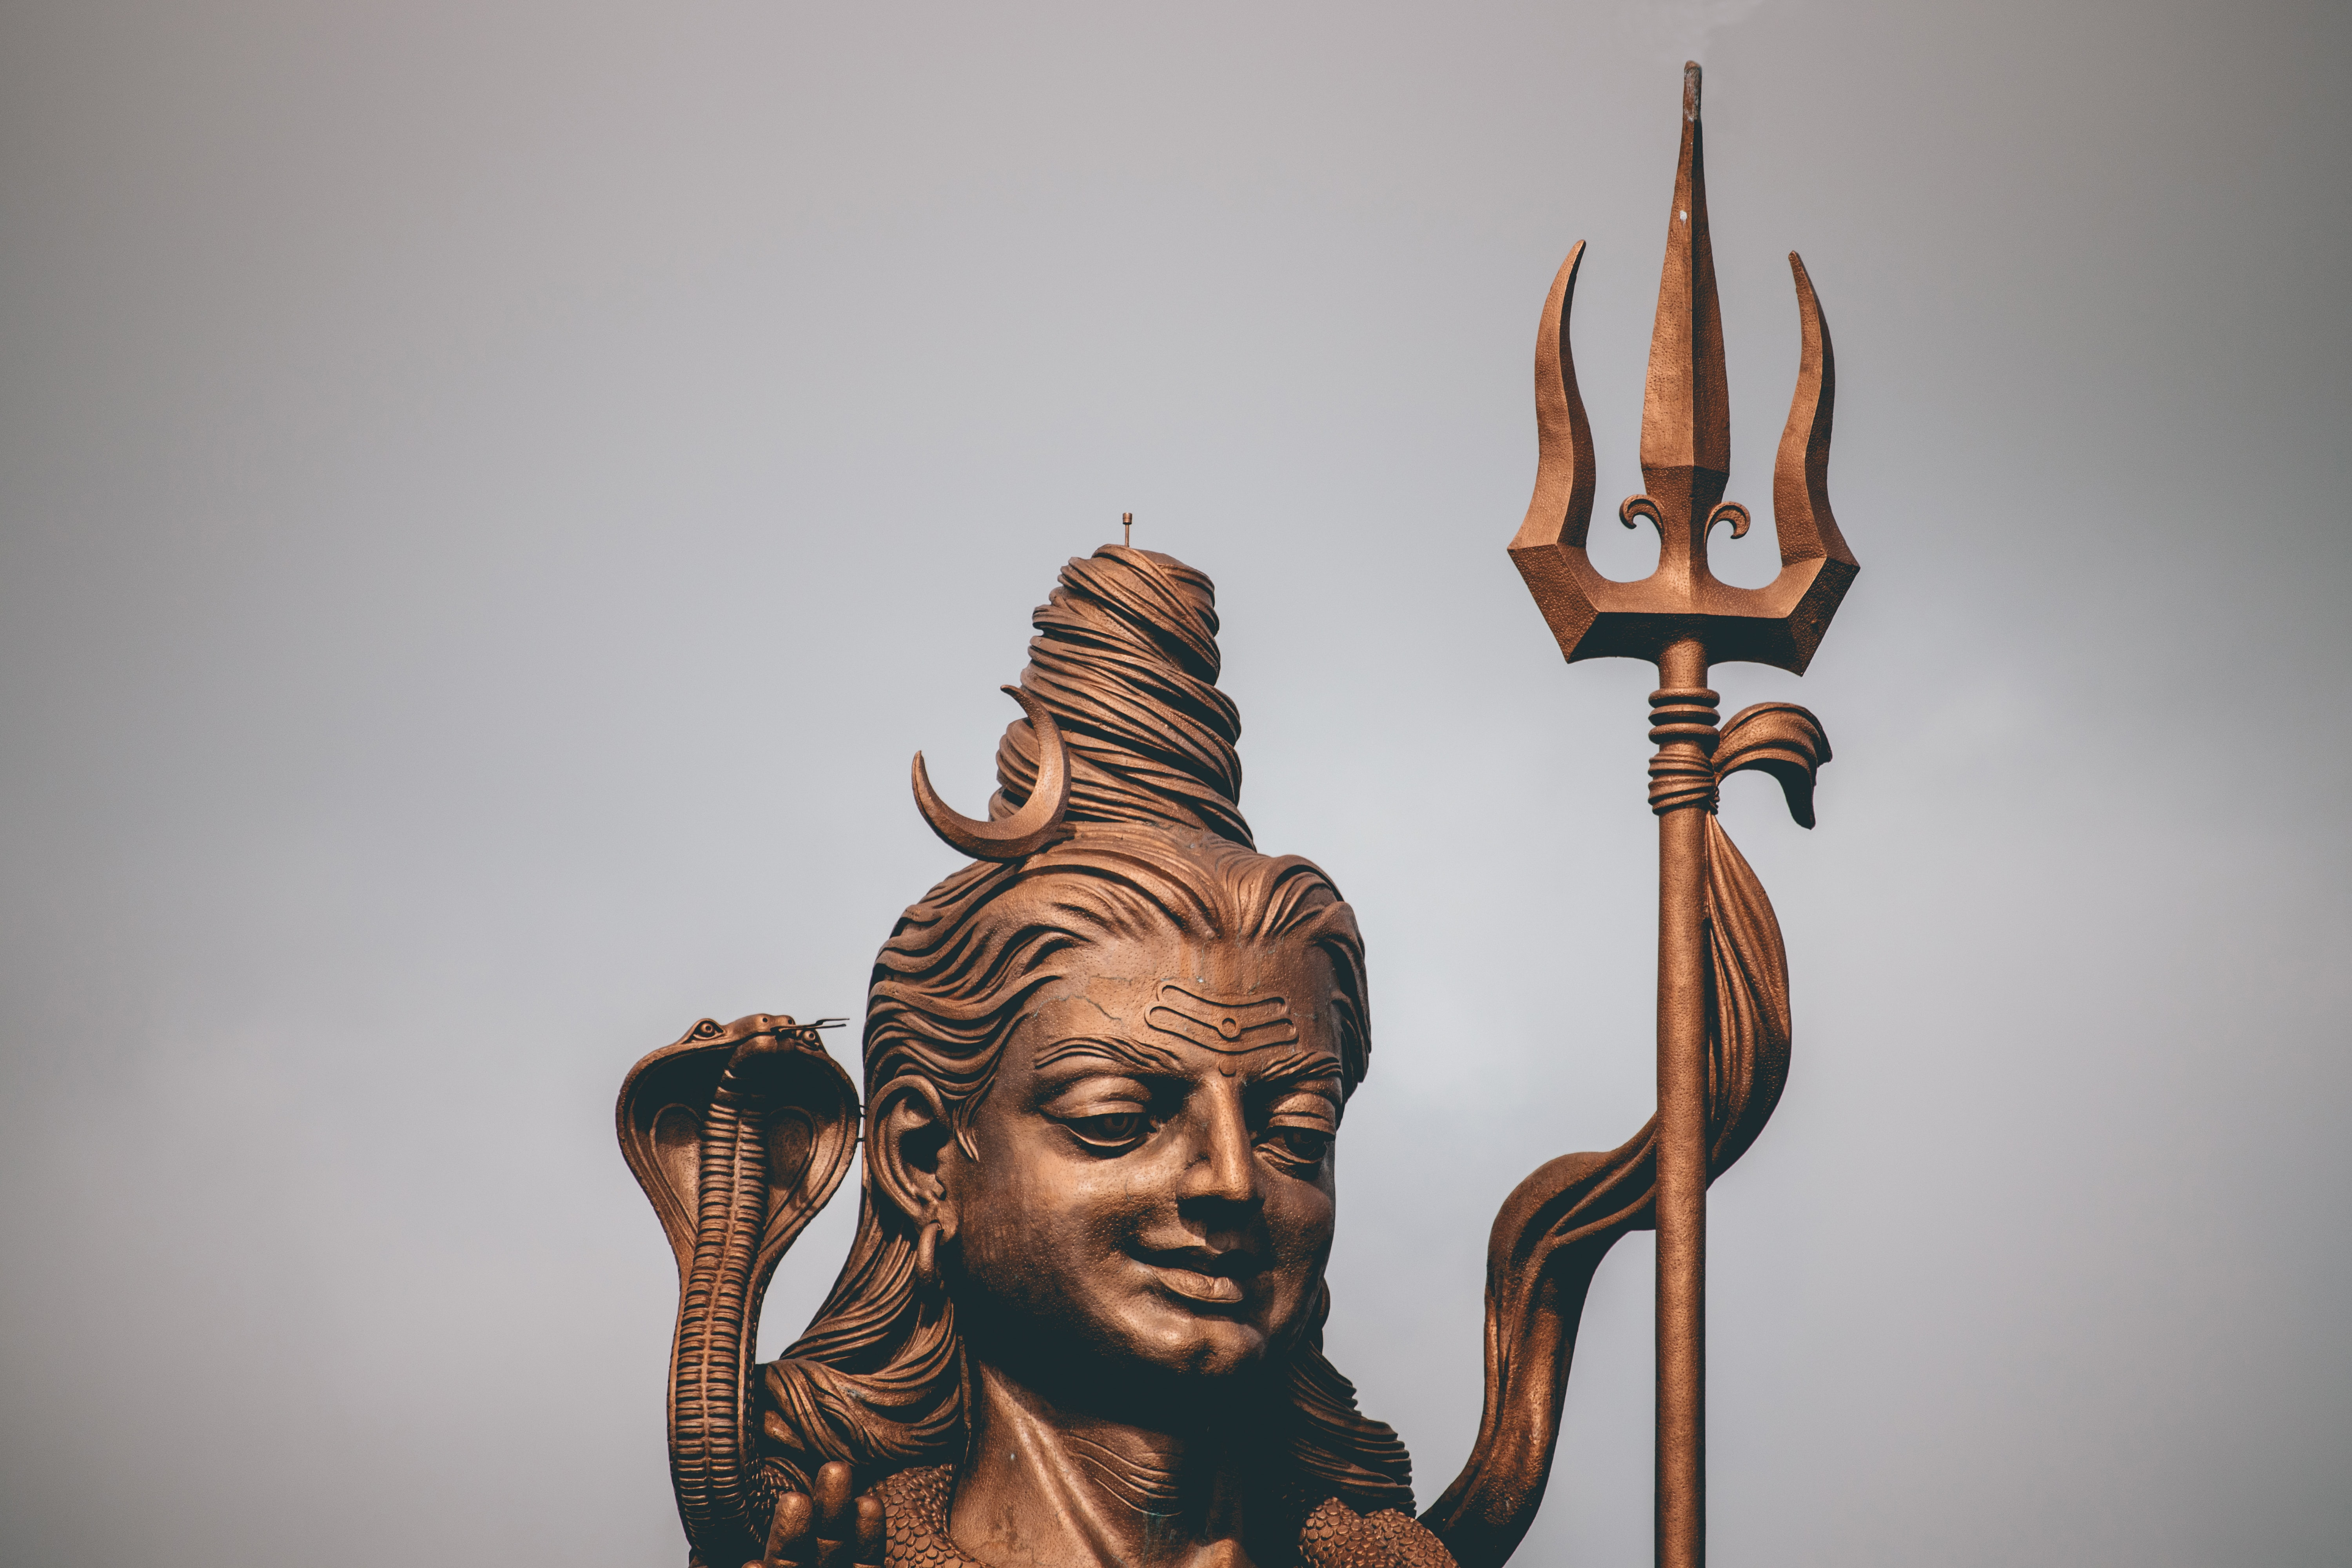 photo of Lord Shiva statue